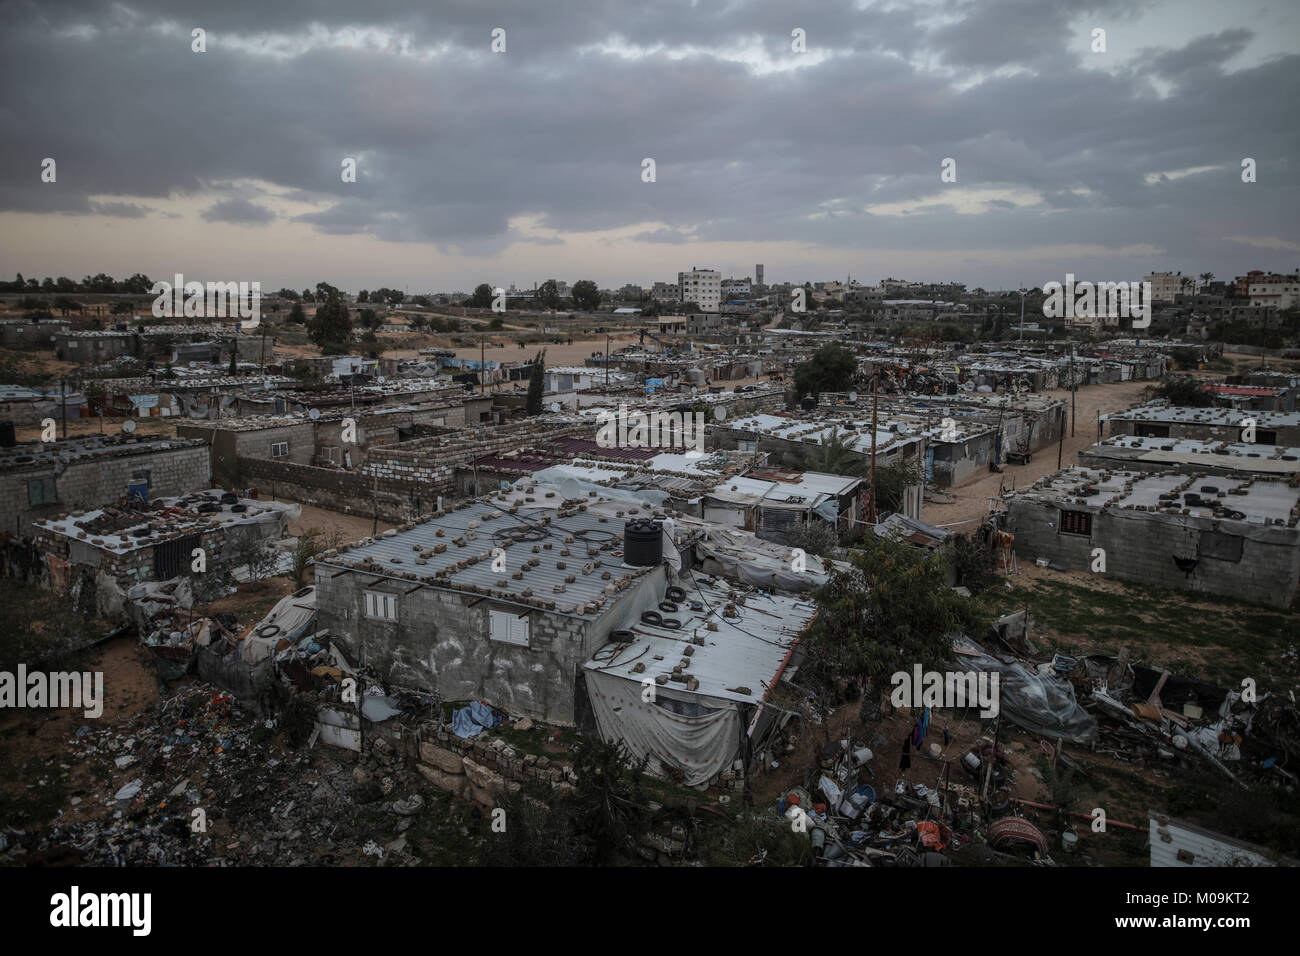 A general view of the Khan Younis refugee camp where much of